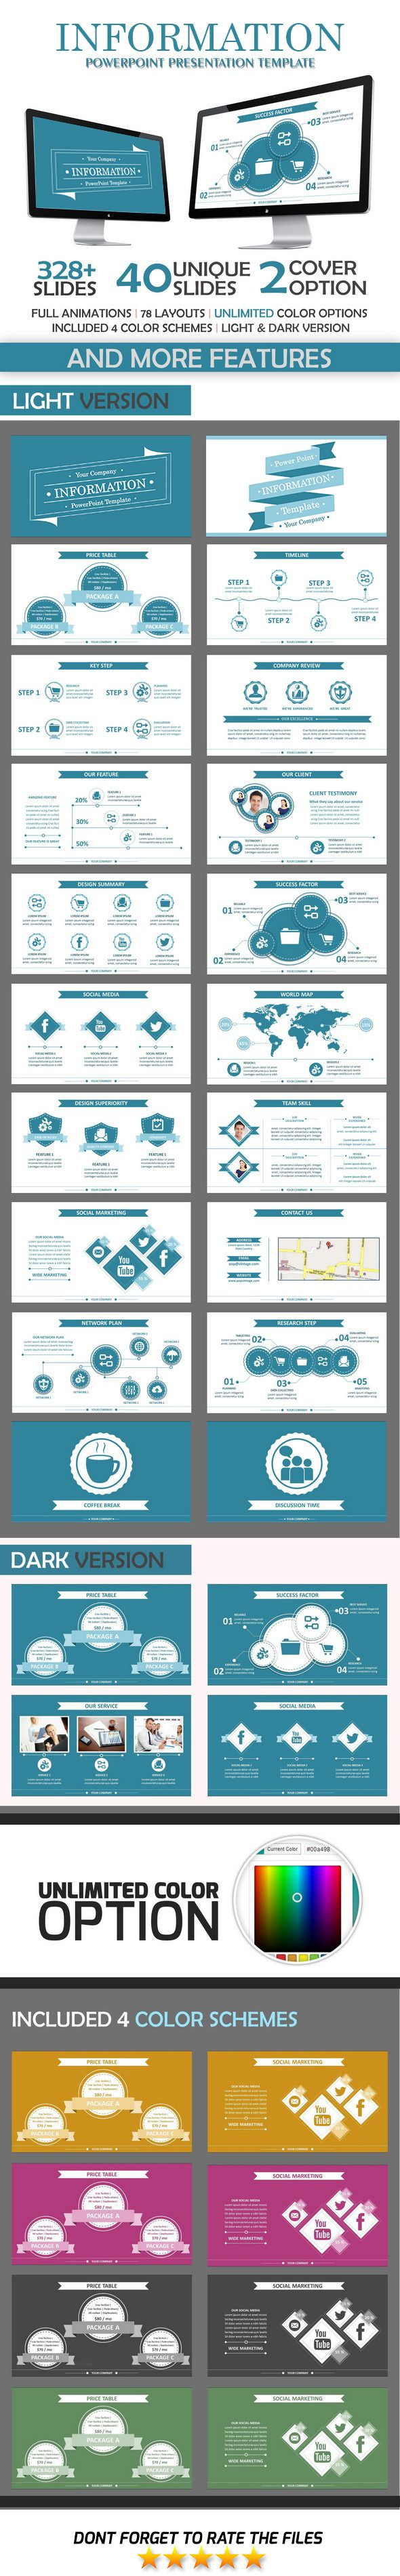 Information PowerPoint Template - Creative PowerPoint Templates